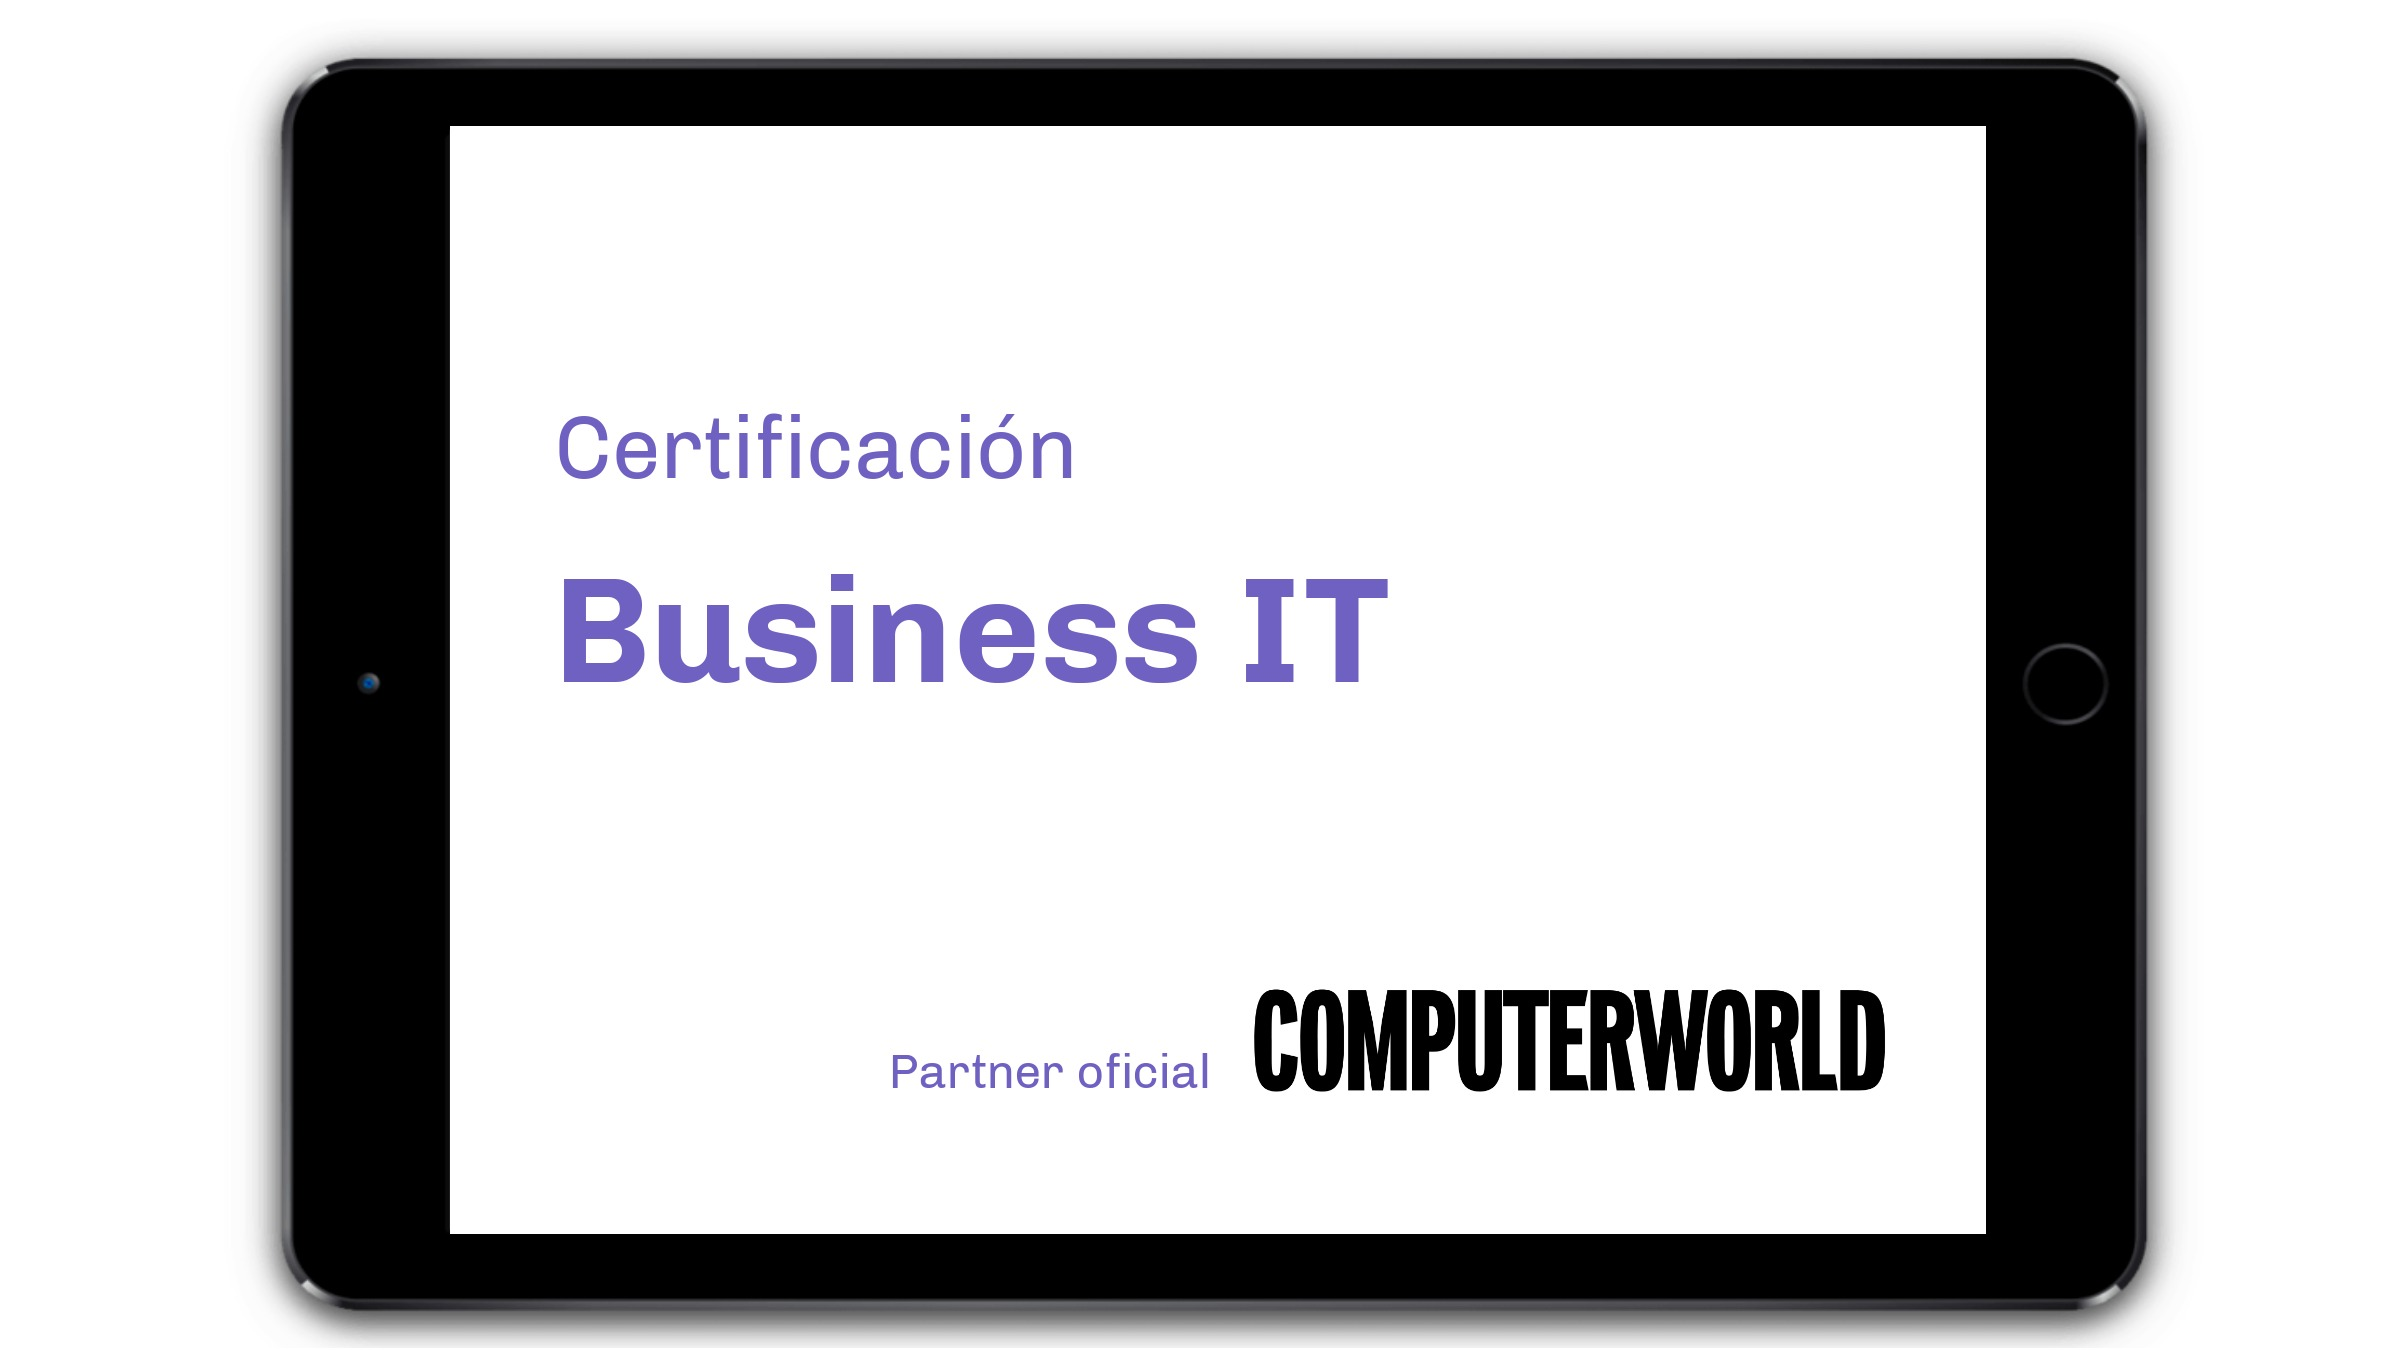 Certificacion Profesional Business IT Computerworld Instituto Mm Gestion del Cambio Ciberseguridad Alerta España